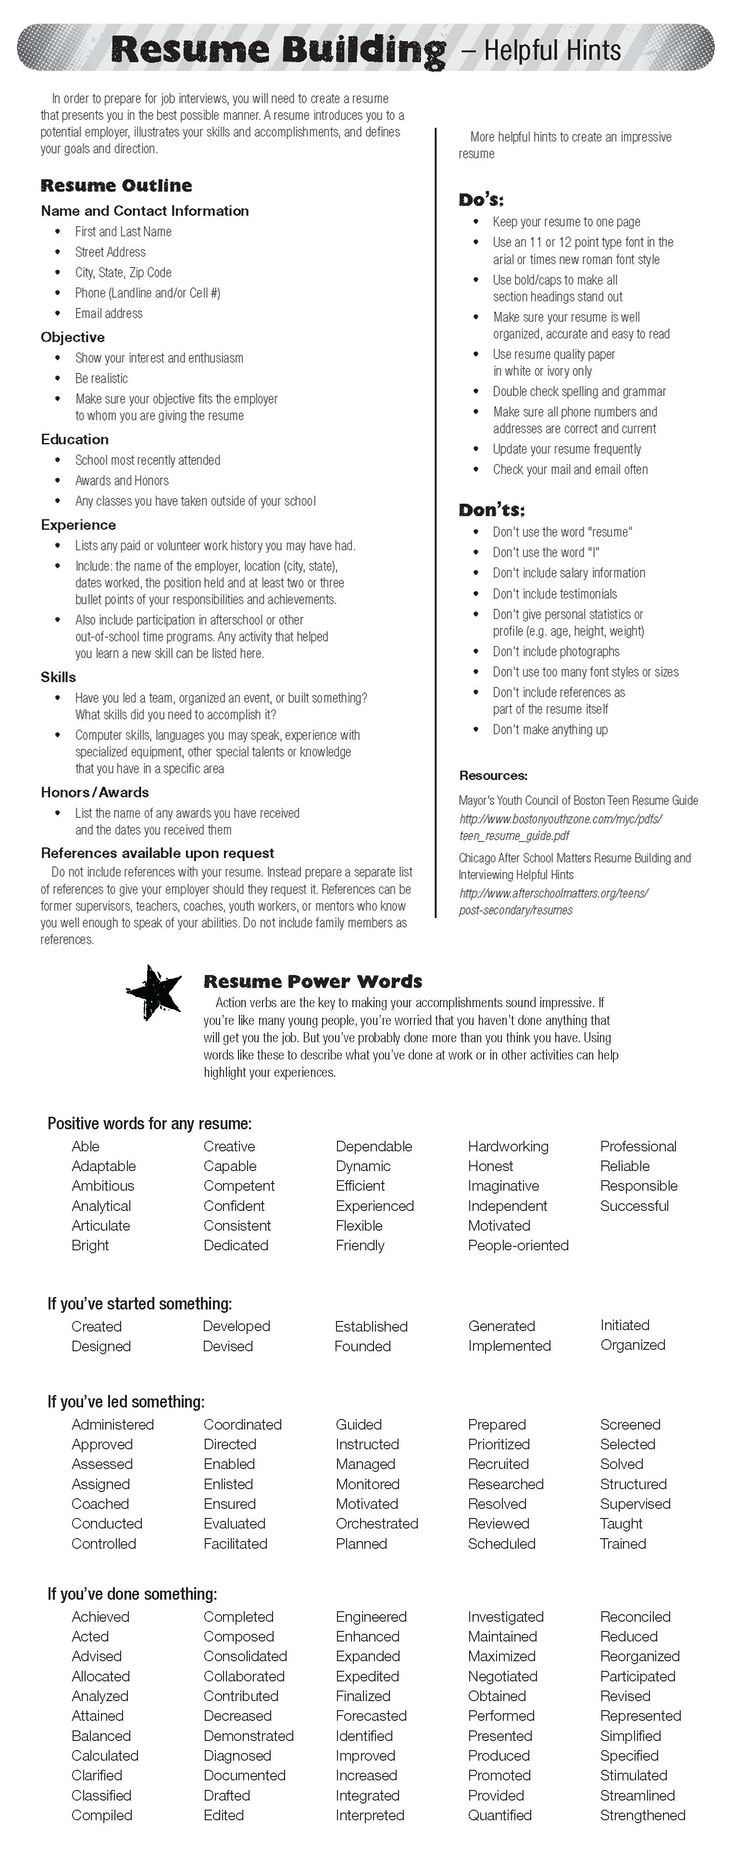 Opposenewapstandardsus  Picturesque  Ideas About Resume On Pinterest  Cv Format Resume Cv And  With Likable  Ideas About Resume On Pinterest  Cv Format Resume Cv And Resume Templates With Agreeable Real Resume Examples Also Resume Objective For Warehouse In Addition Professional Statement Resume And Live Careers Resume As Well As Executive Summary On Resume Additionally Outstanding Resume From Pinterestcom With Opposenewapstandardsus  Likable  Ideas About Resume On Pinterest  Cv Format Resume Cv And  With Agreeable  Ideas About Resume On Pinterest  Cv Format Resume Cv And Resume Templates And Picturesque Real Resume Examples Also Resume Objective For Warehouse In Addition Professional Statement Resume From Pinterestcom